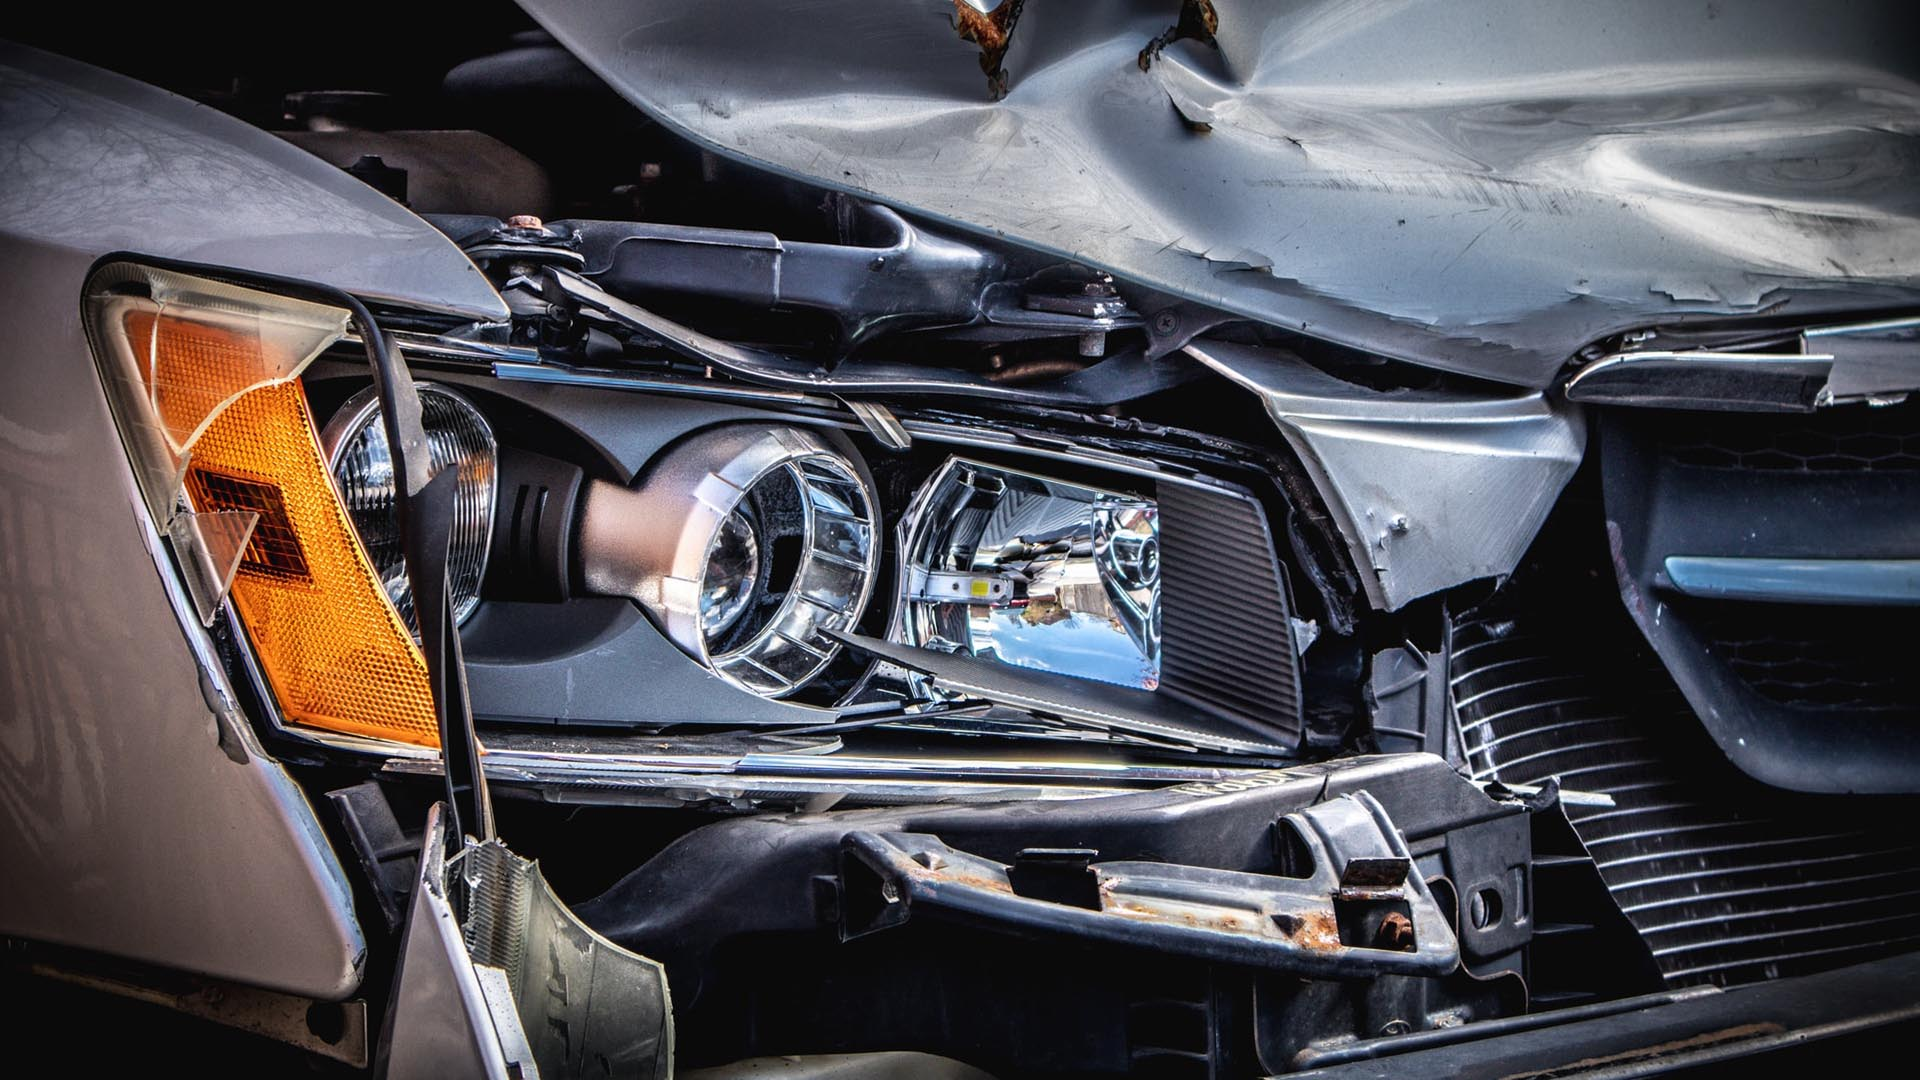 Motor Vehicle Accident Fatalities: What Rights Do Family Members Have?